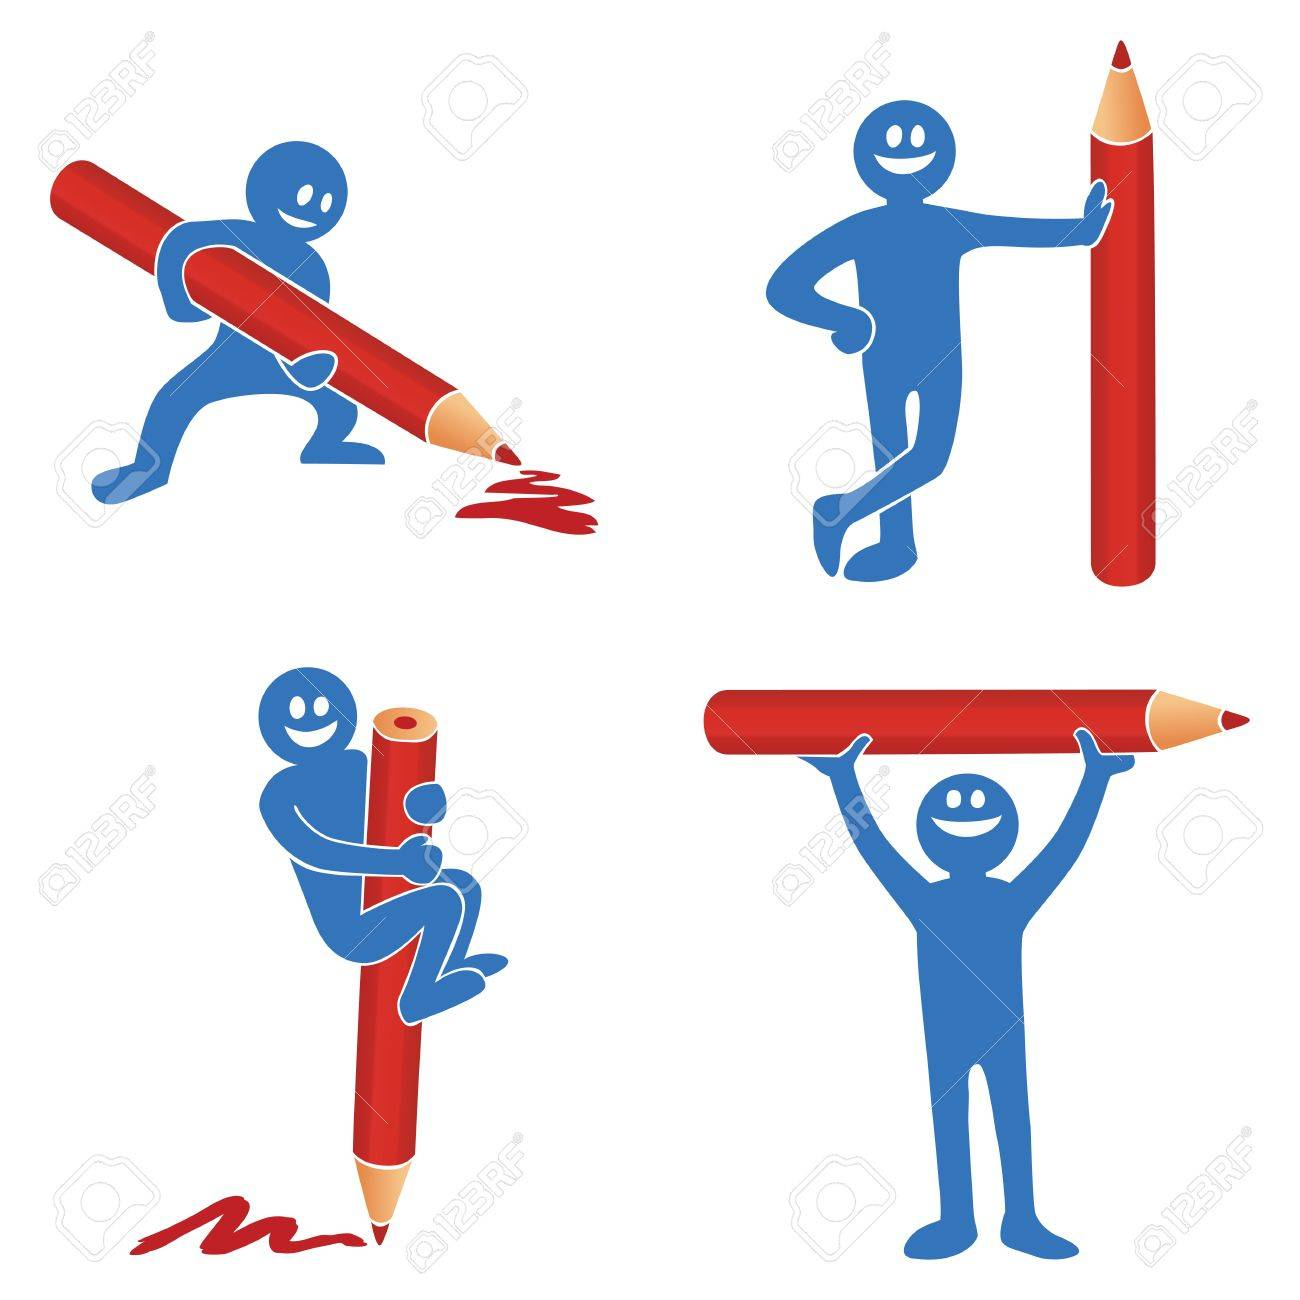 Blue stick figure with red pencil Stock Vector - 11272148